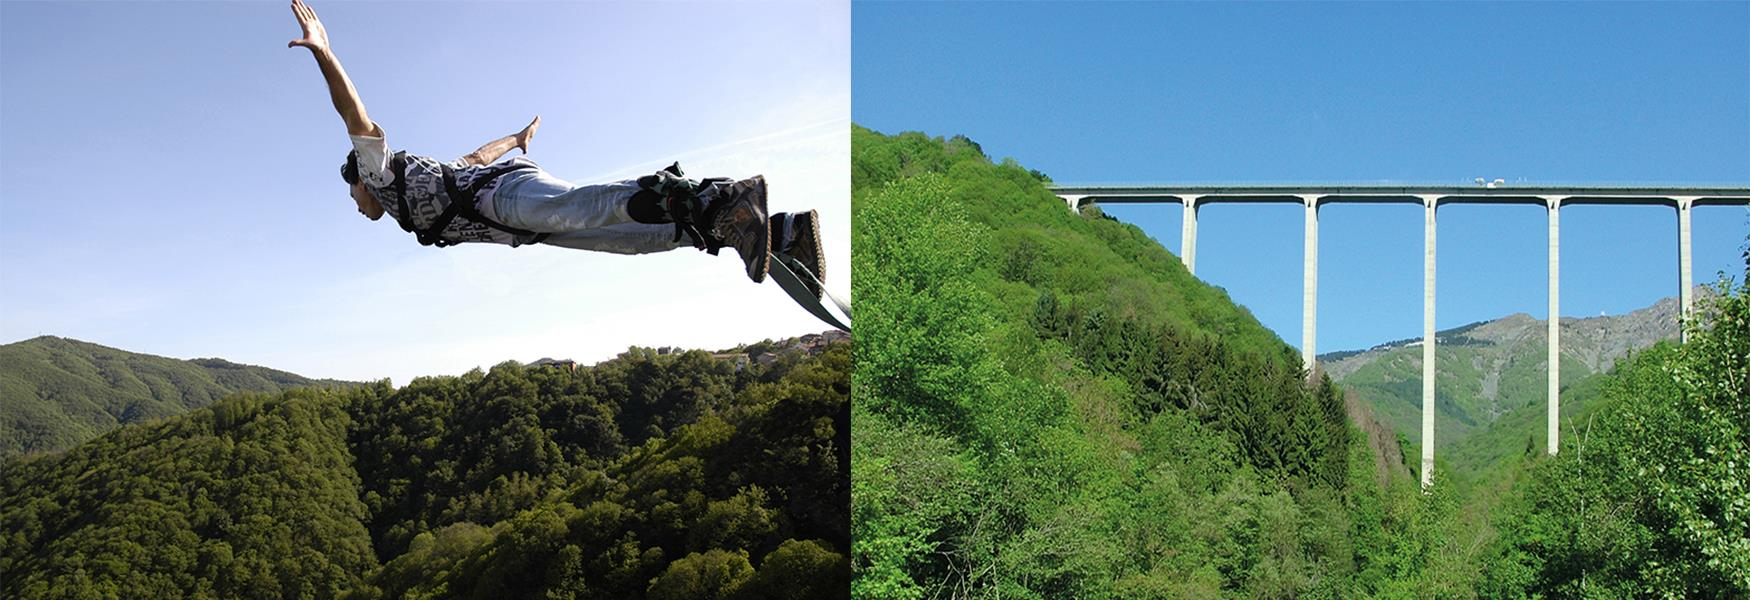 Bungee Jumping dal ponte Colossus